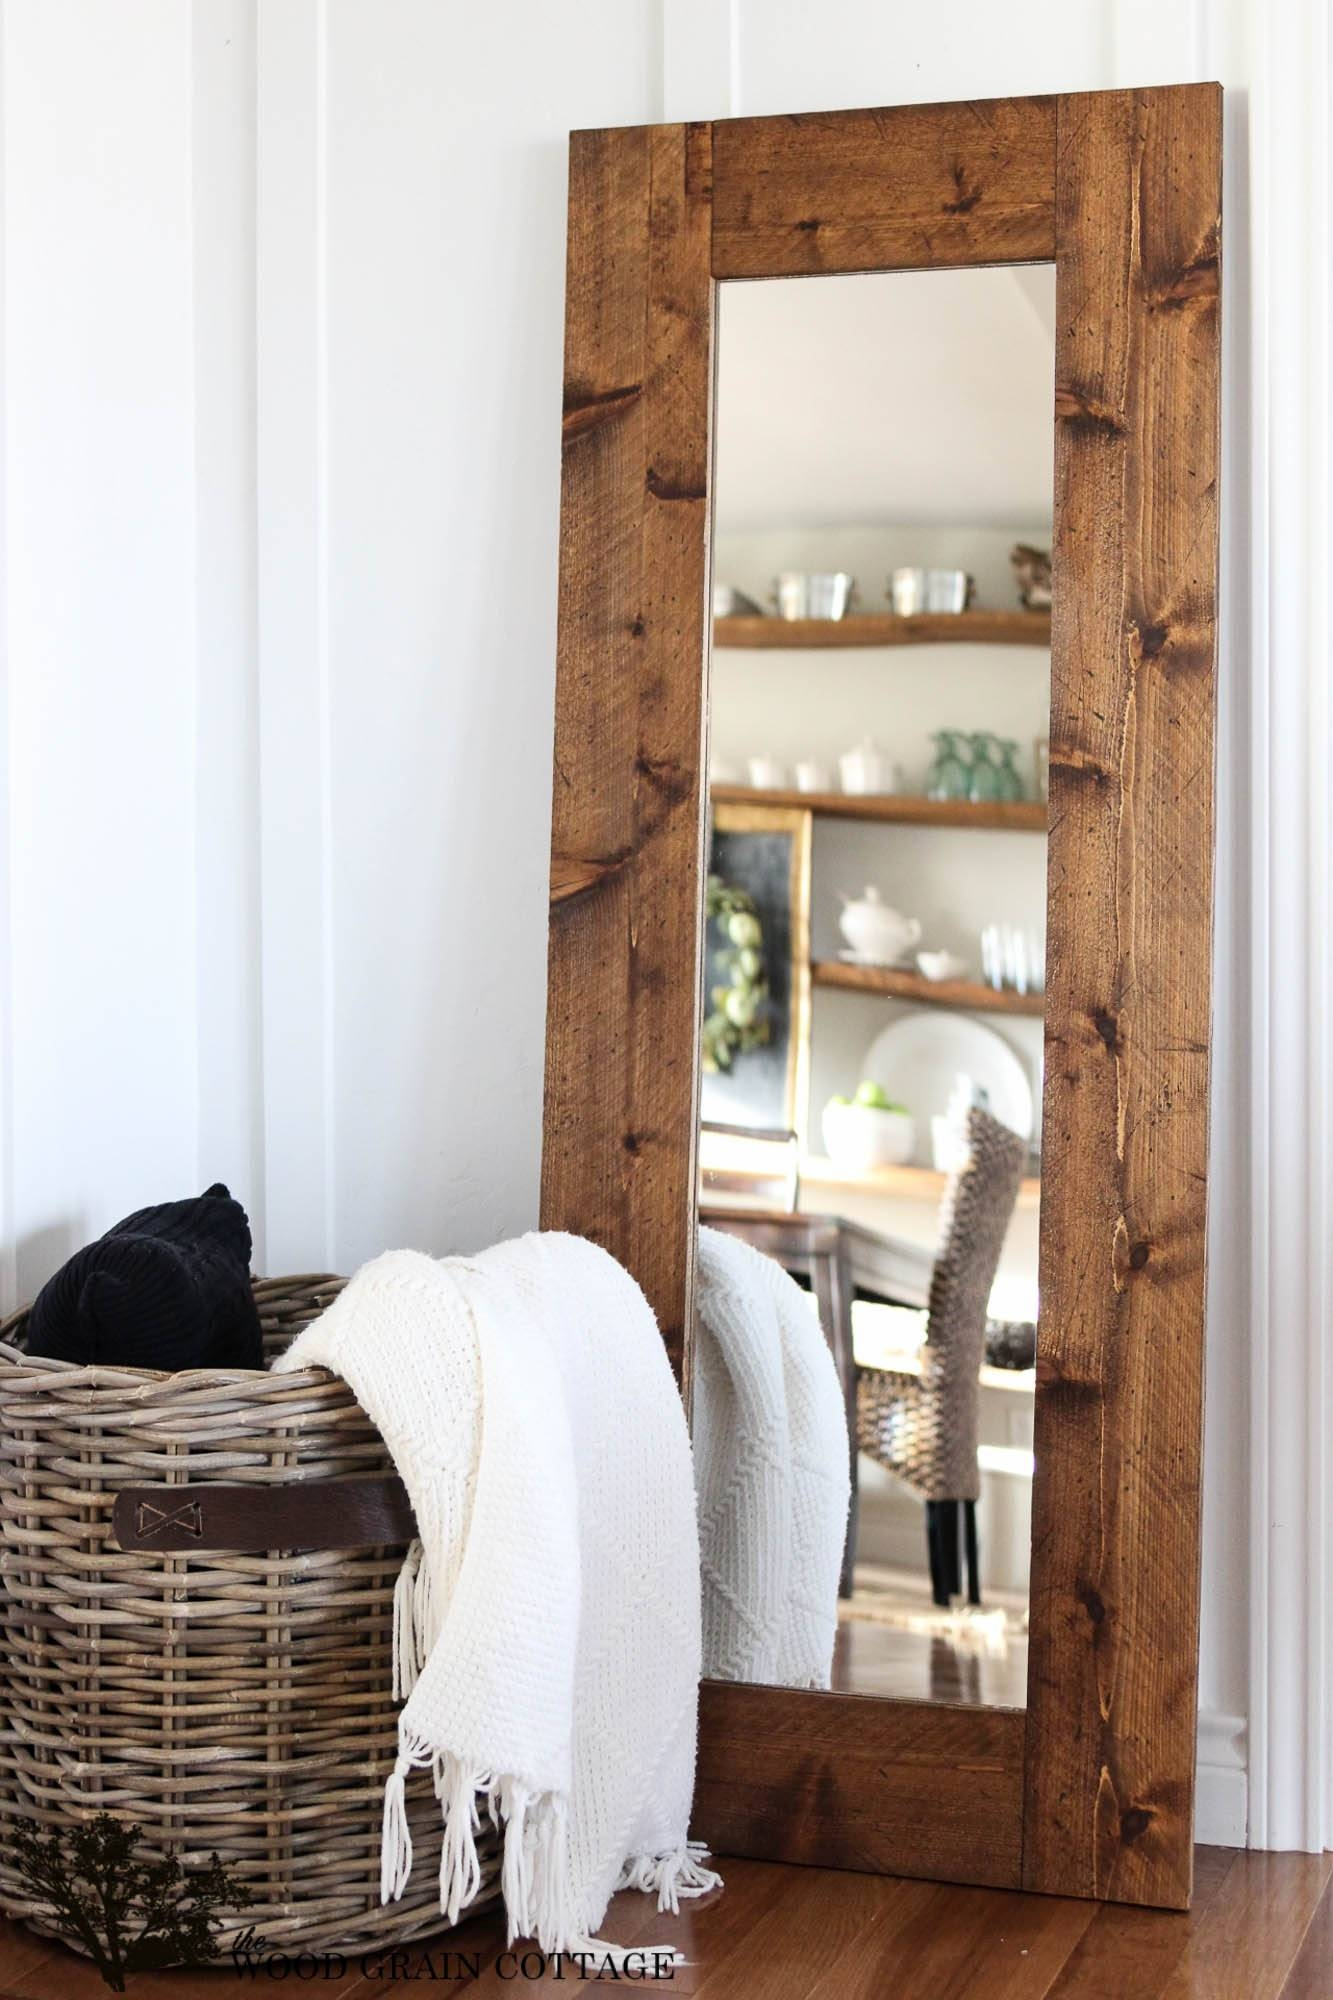 Diy Wood Framed Mirror - The Wood Grain Cottage for Rustic Oak Framed Mirrors (Image 8 of 15)